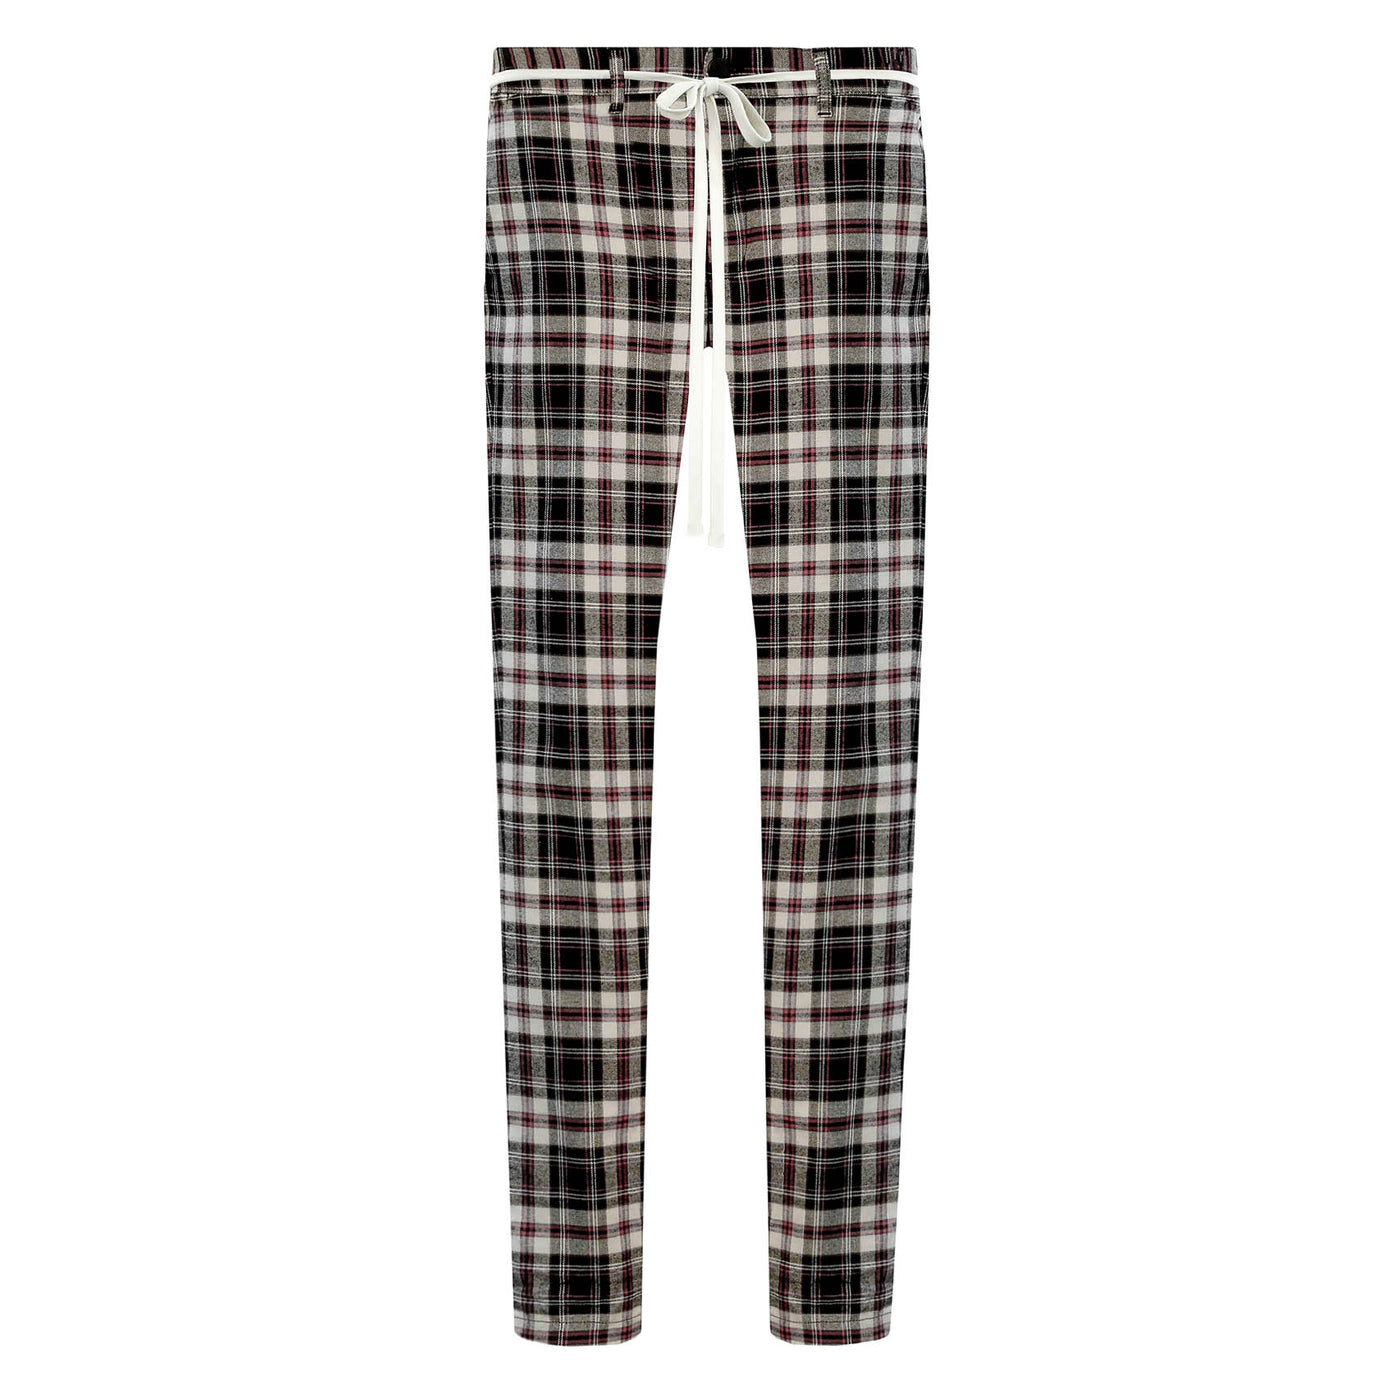 THE PANTHER PLAID PANTS